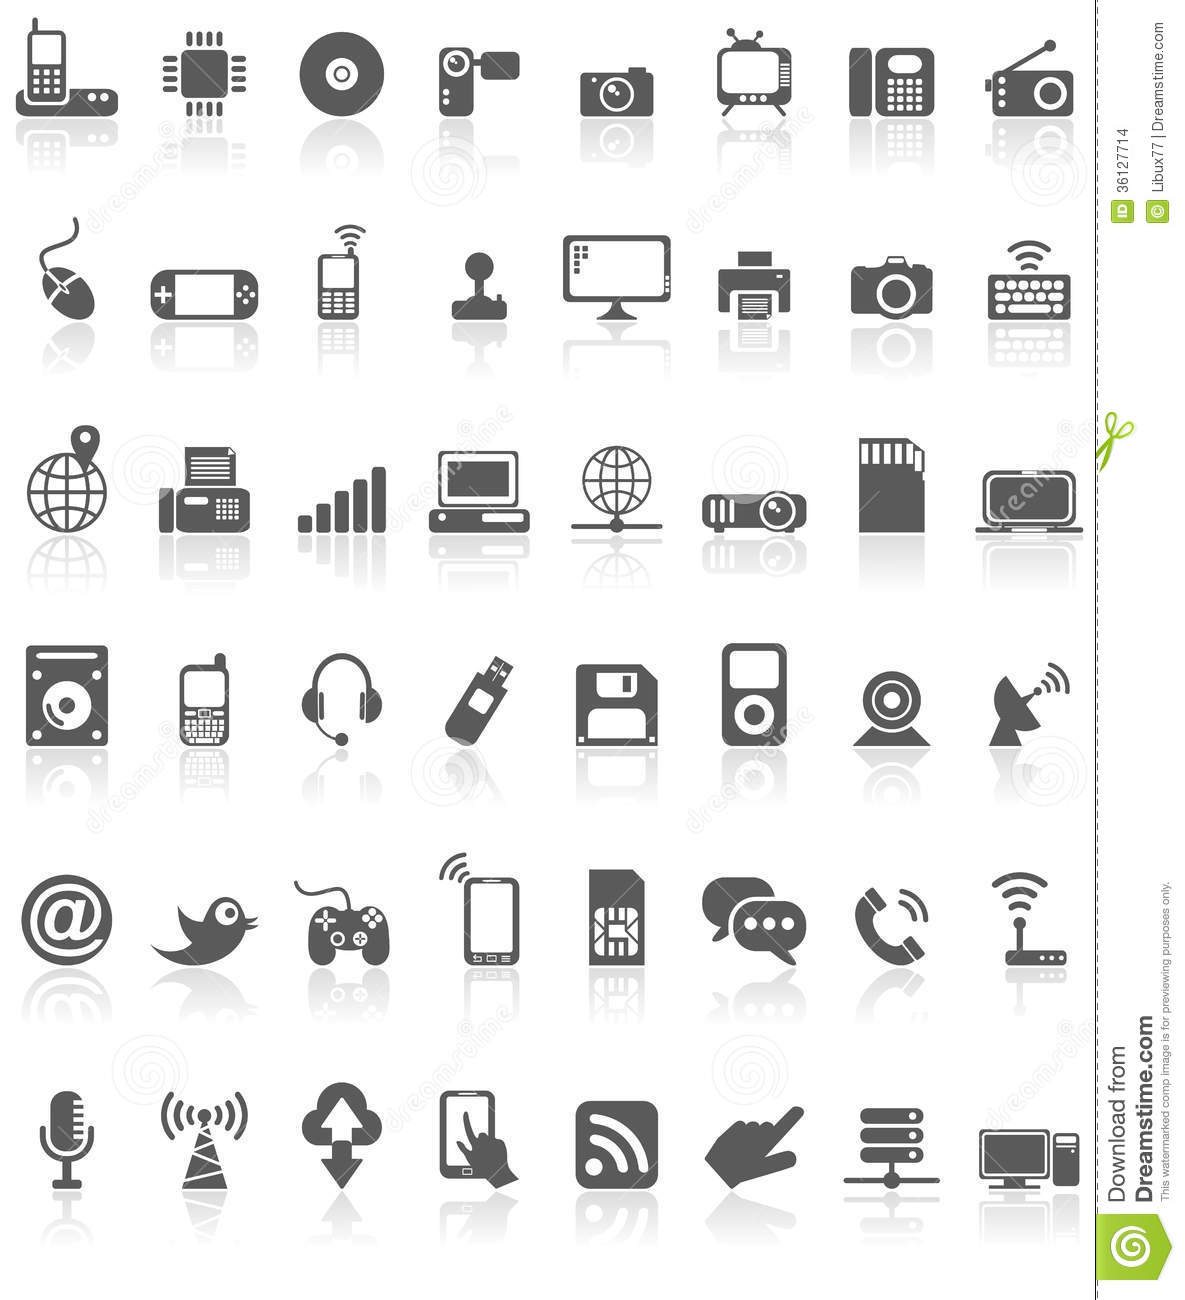 16 Black And White Technology Icons Images